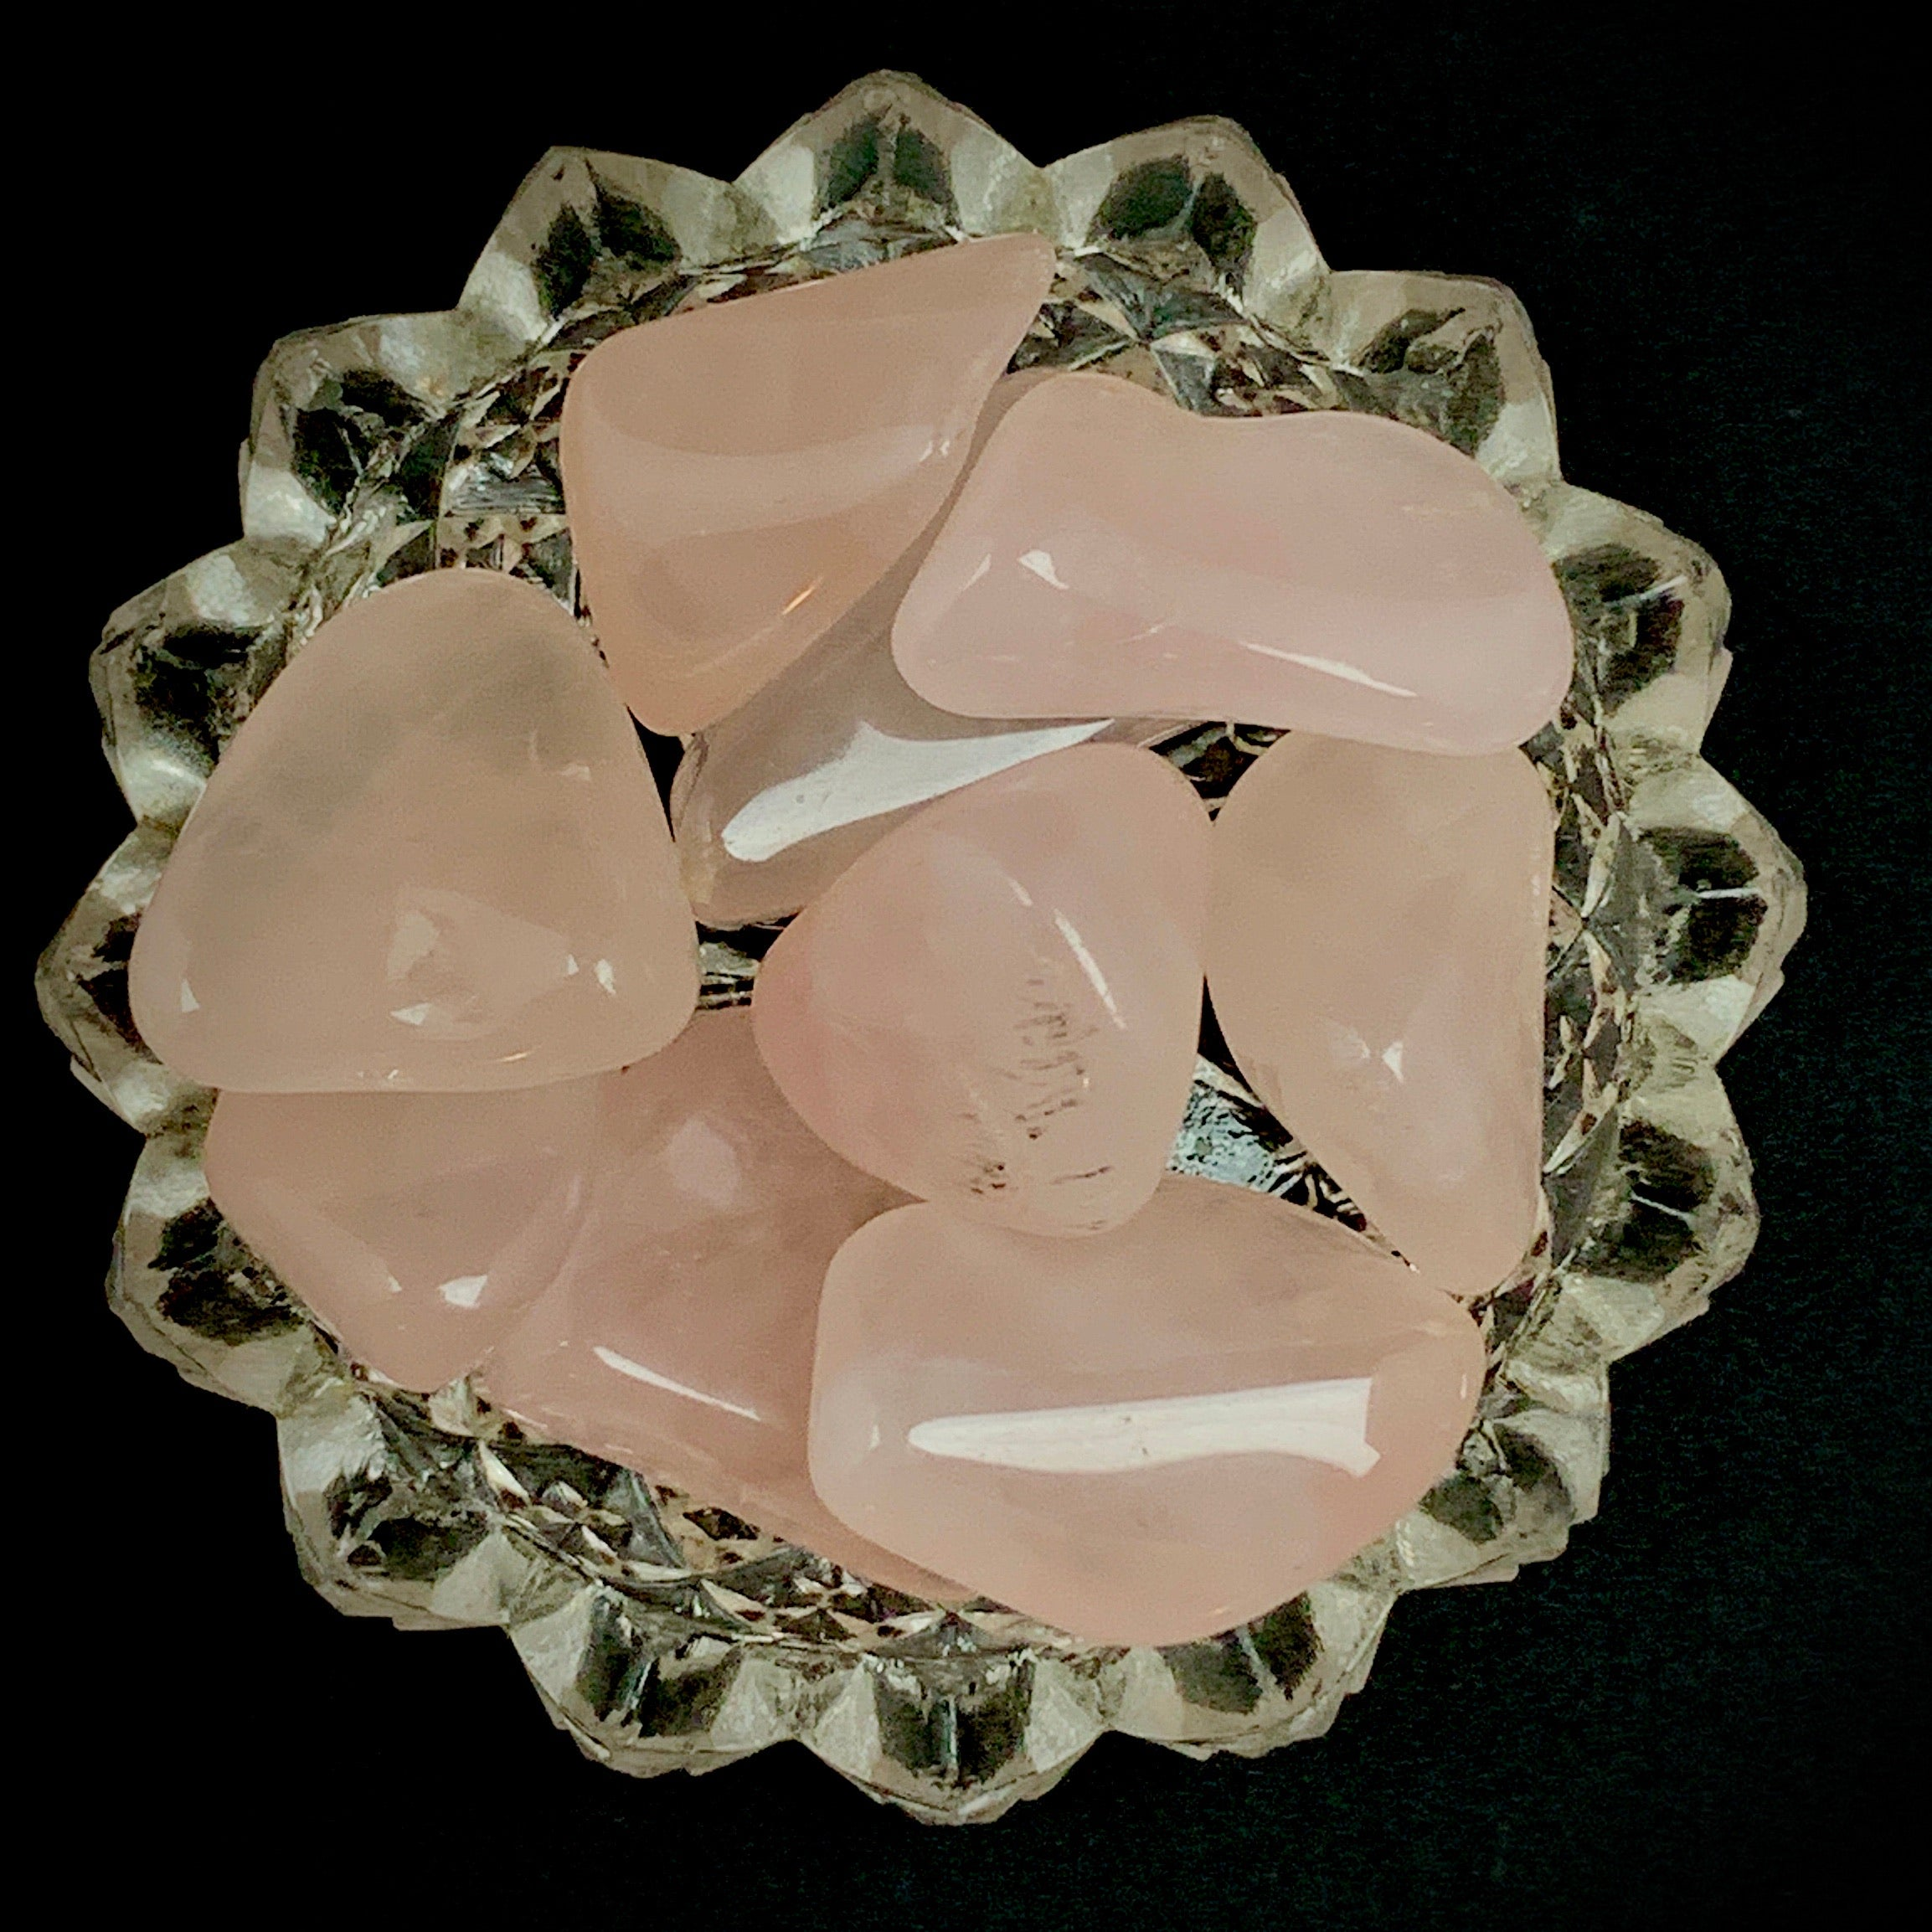 Gemmy Rose Quartz Tumbles